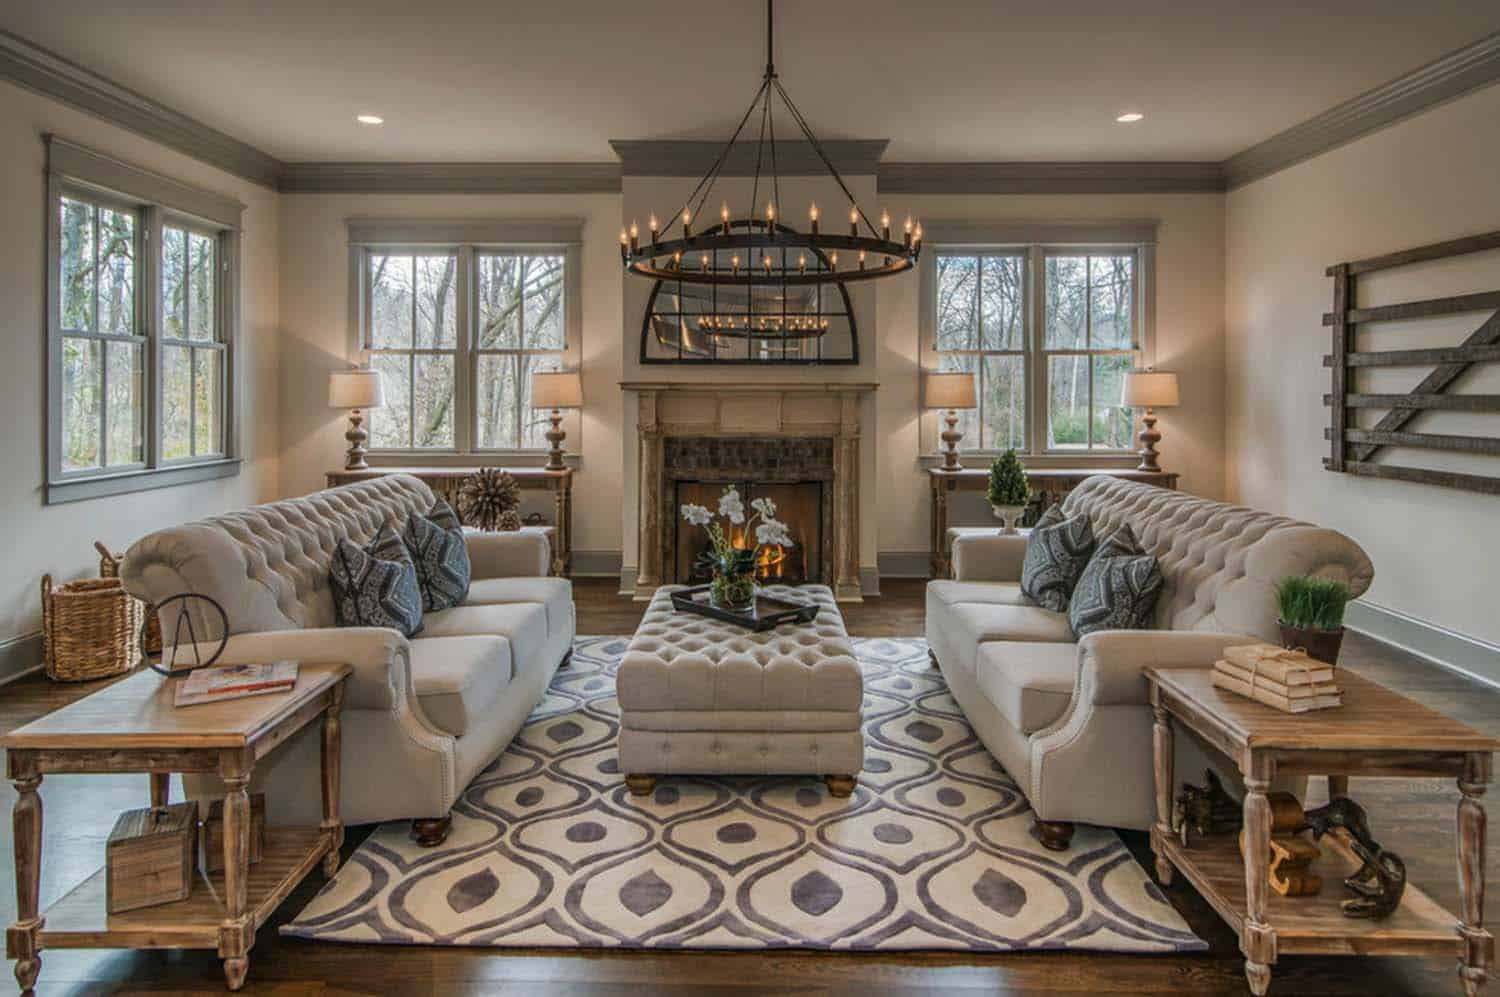 Transitional Style Home-Millworks Designs-01-1 Kindesign